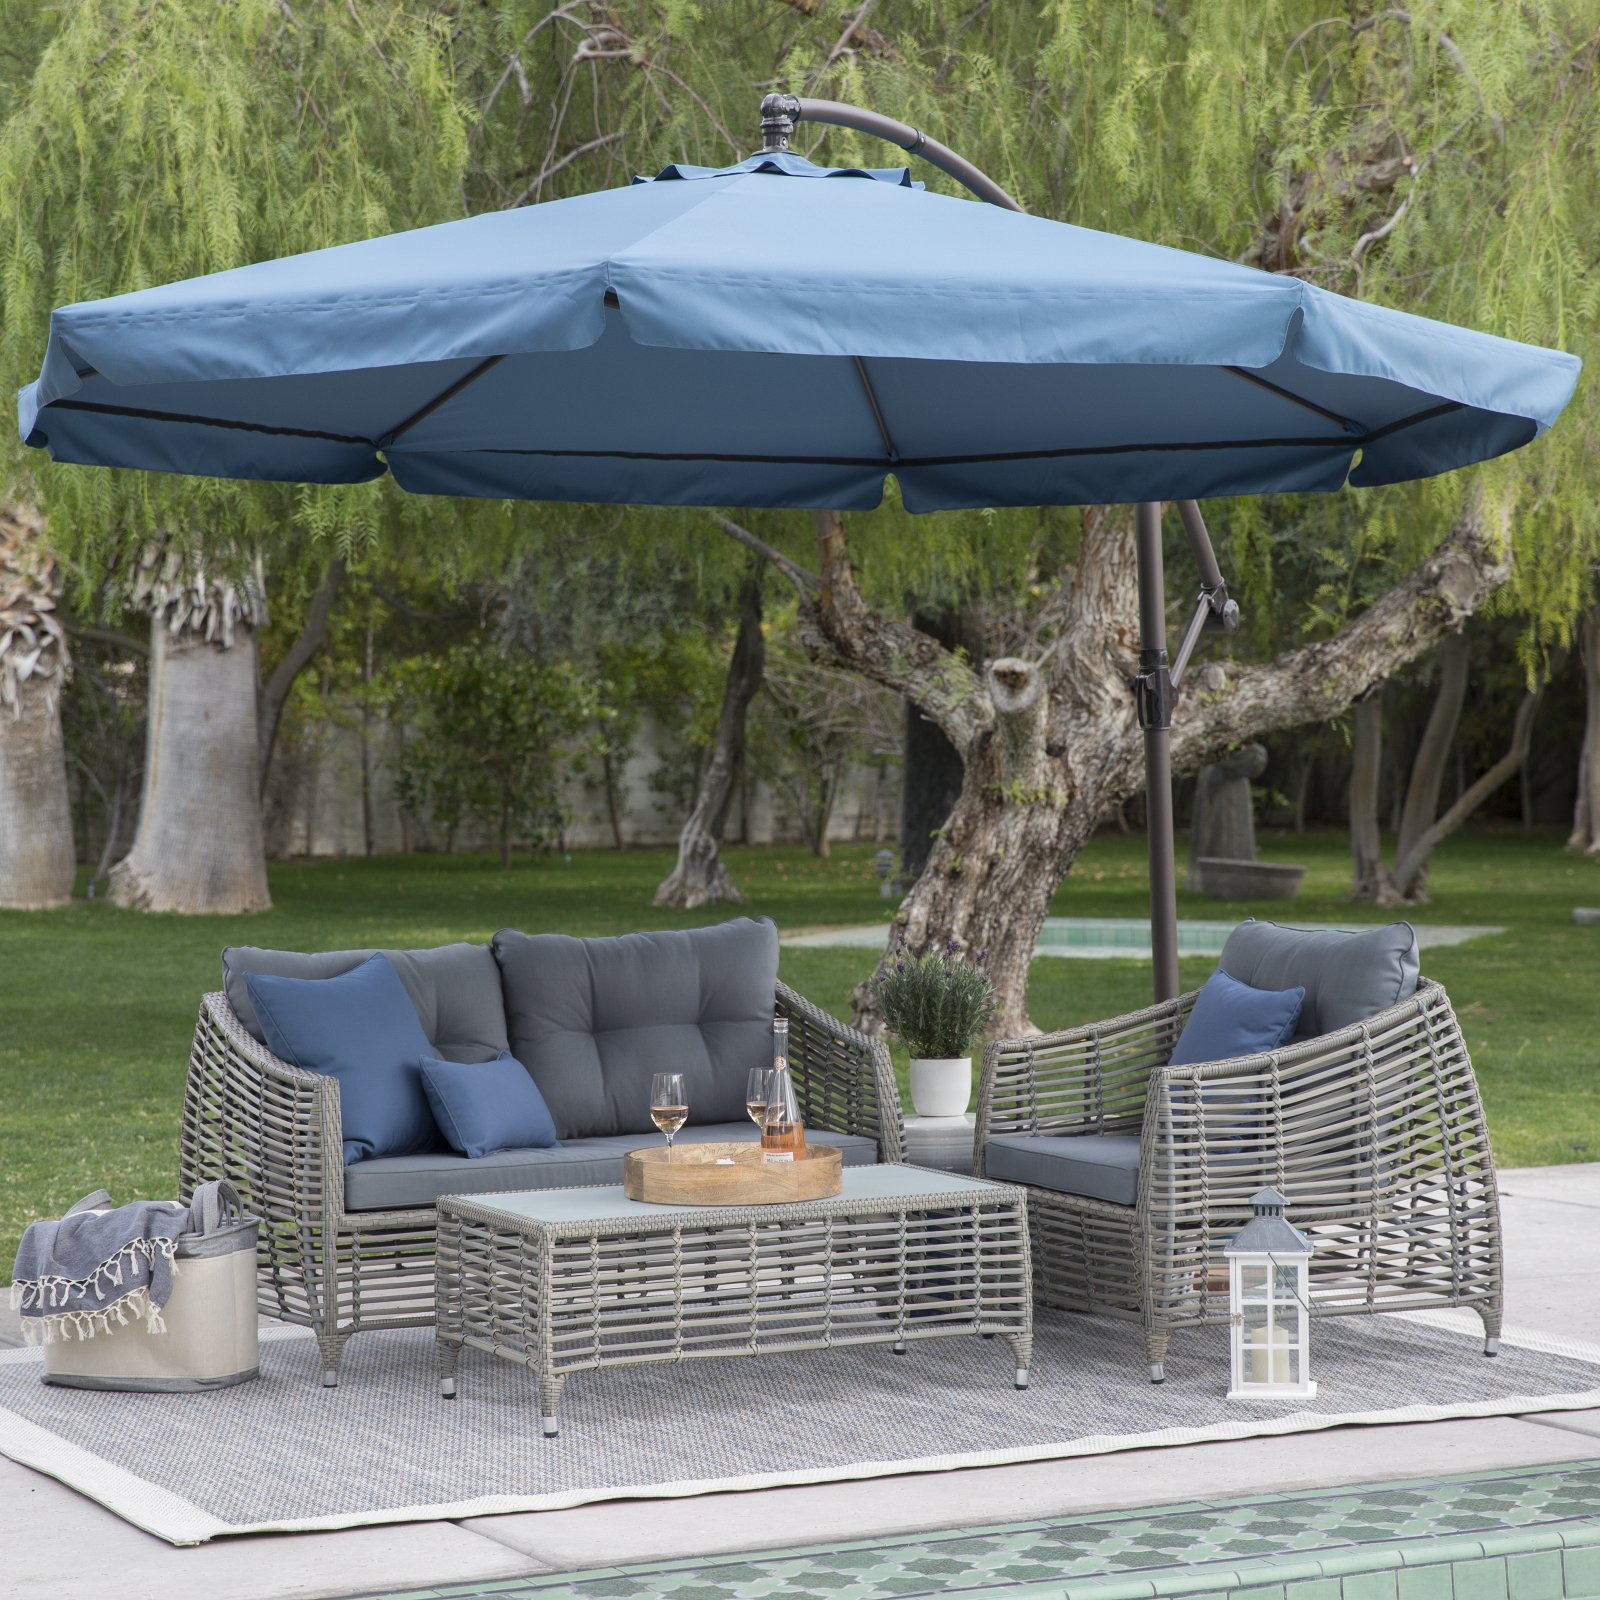 steel offset patio umbrella with detachable netting HHUURMS